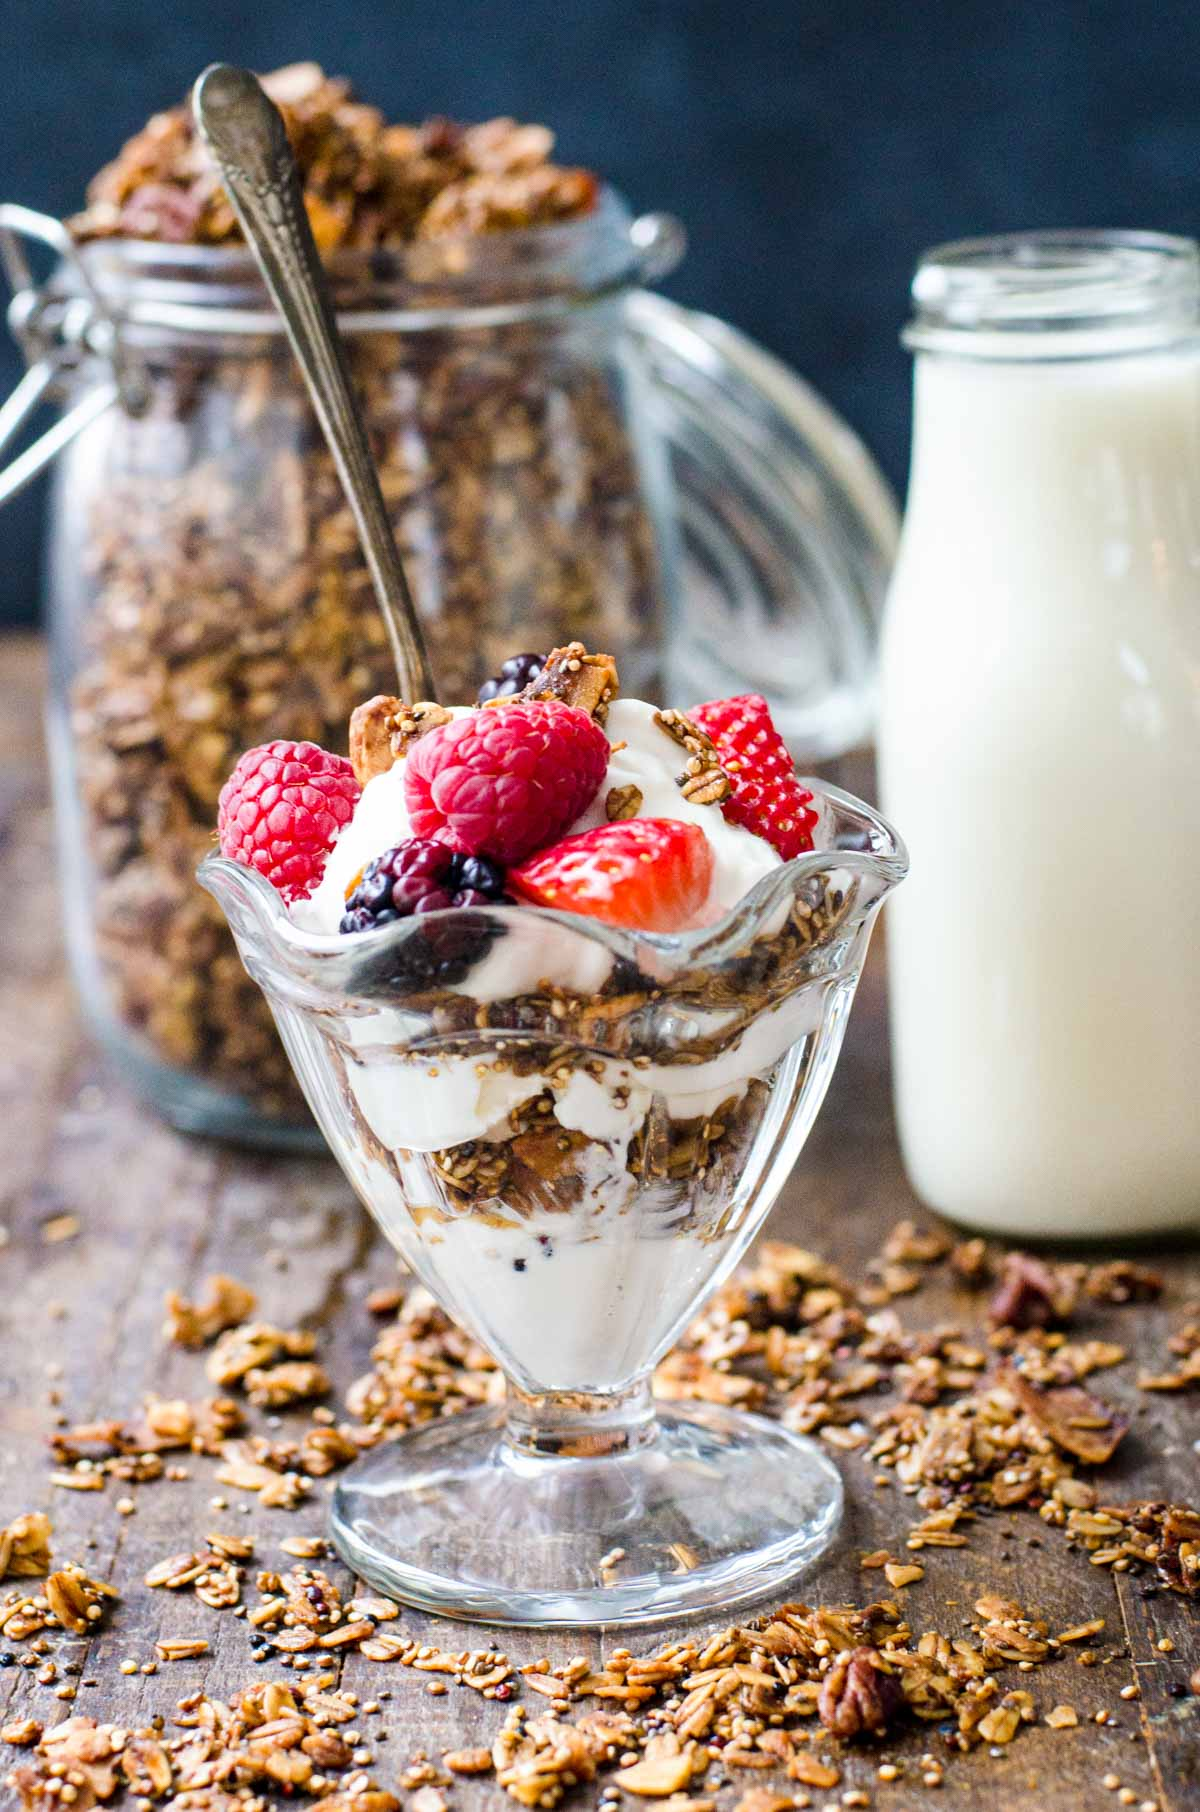 A yogurt and granola parfait topped with berries.